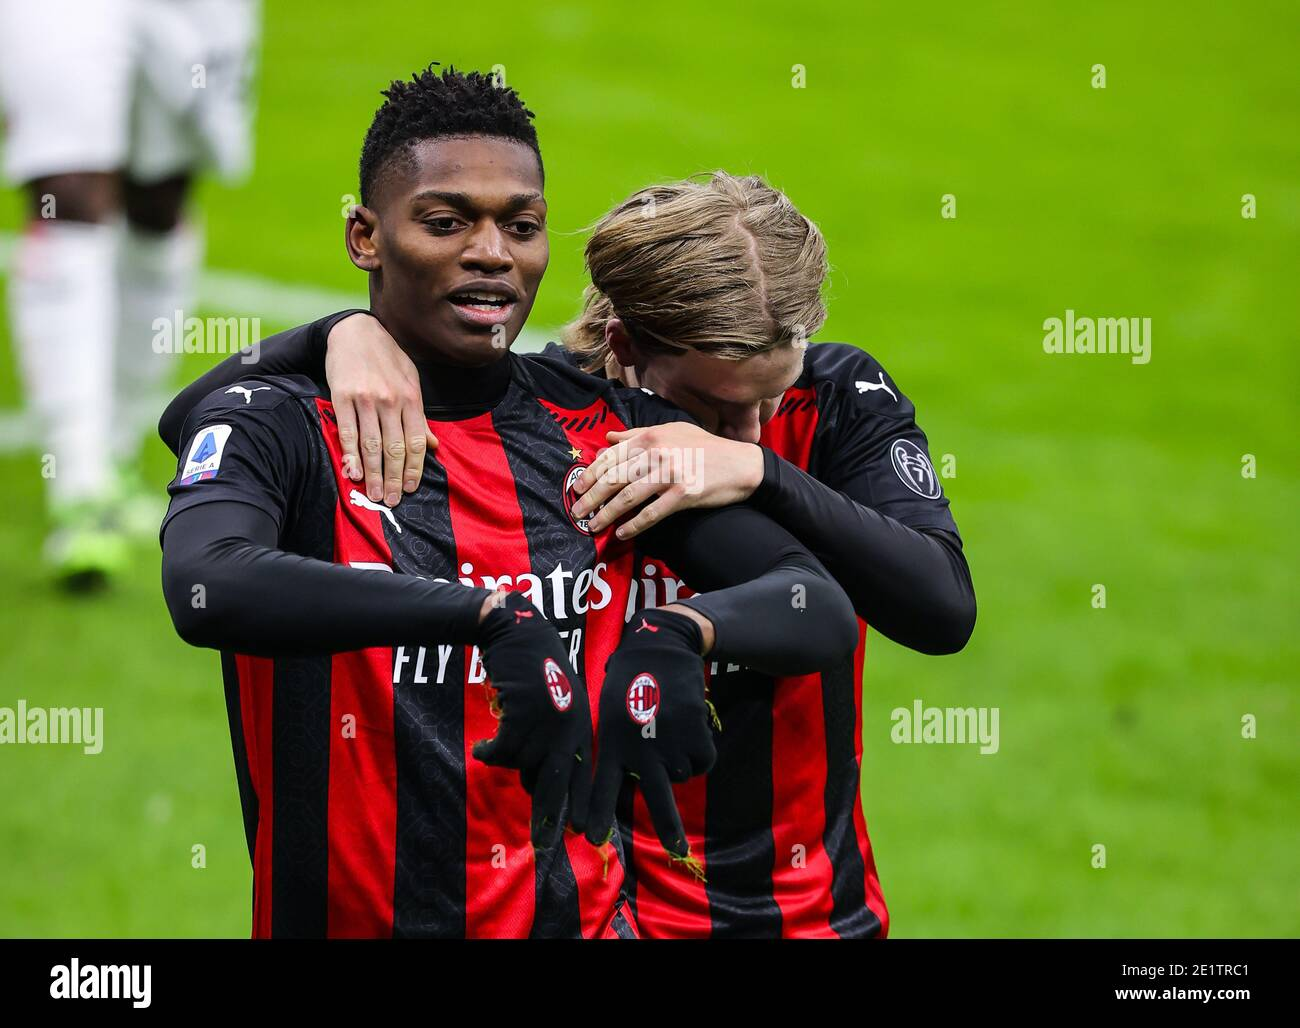 Giuseppe Meazza San Siro stadium, Milan, Italy. 09th Jan, 2021. Rafael Leao of AC Milan celebrates the goal during AC Milan vs Torino FC, Italian football Serie A match - Photo Fabrizio Carabelli/LM Credit: LiveMedia/Alamy Live News Stock Photo